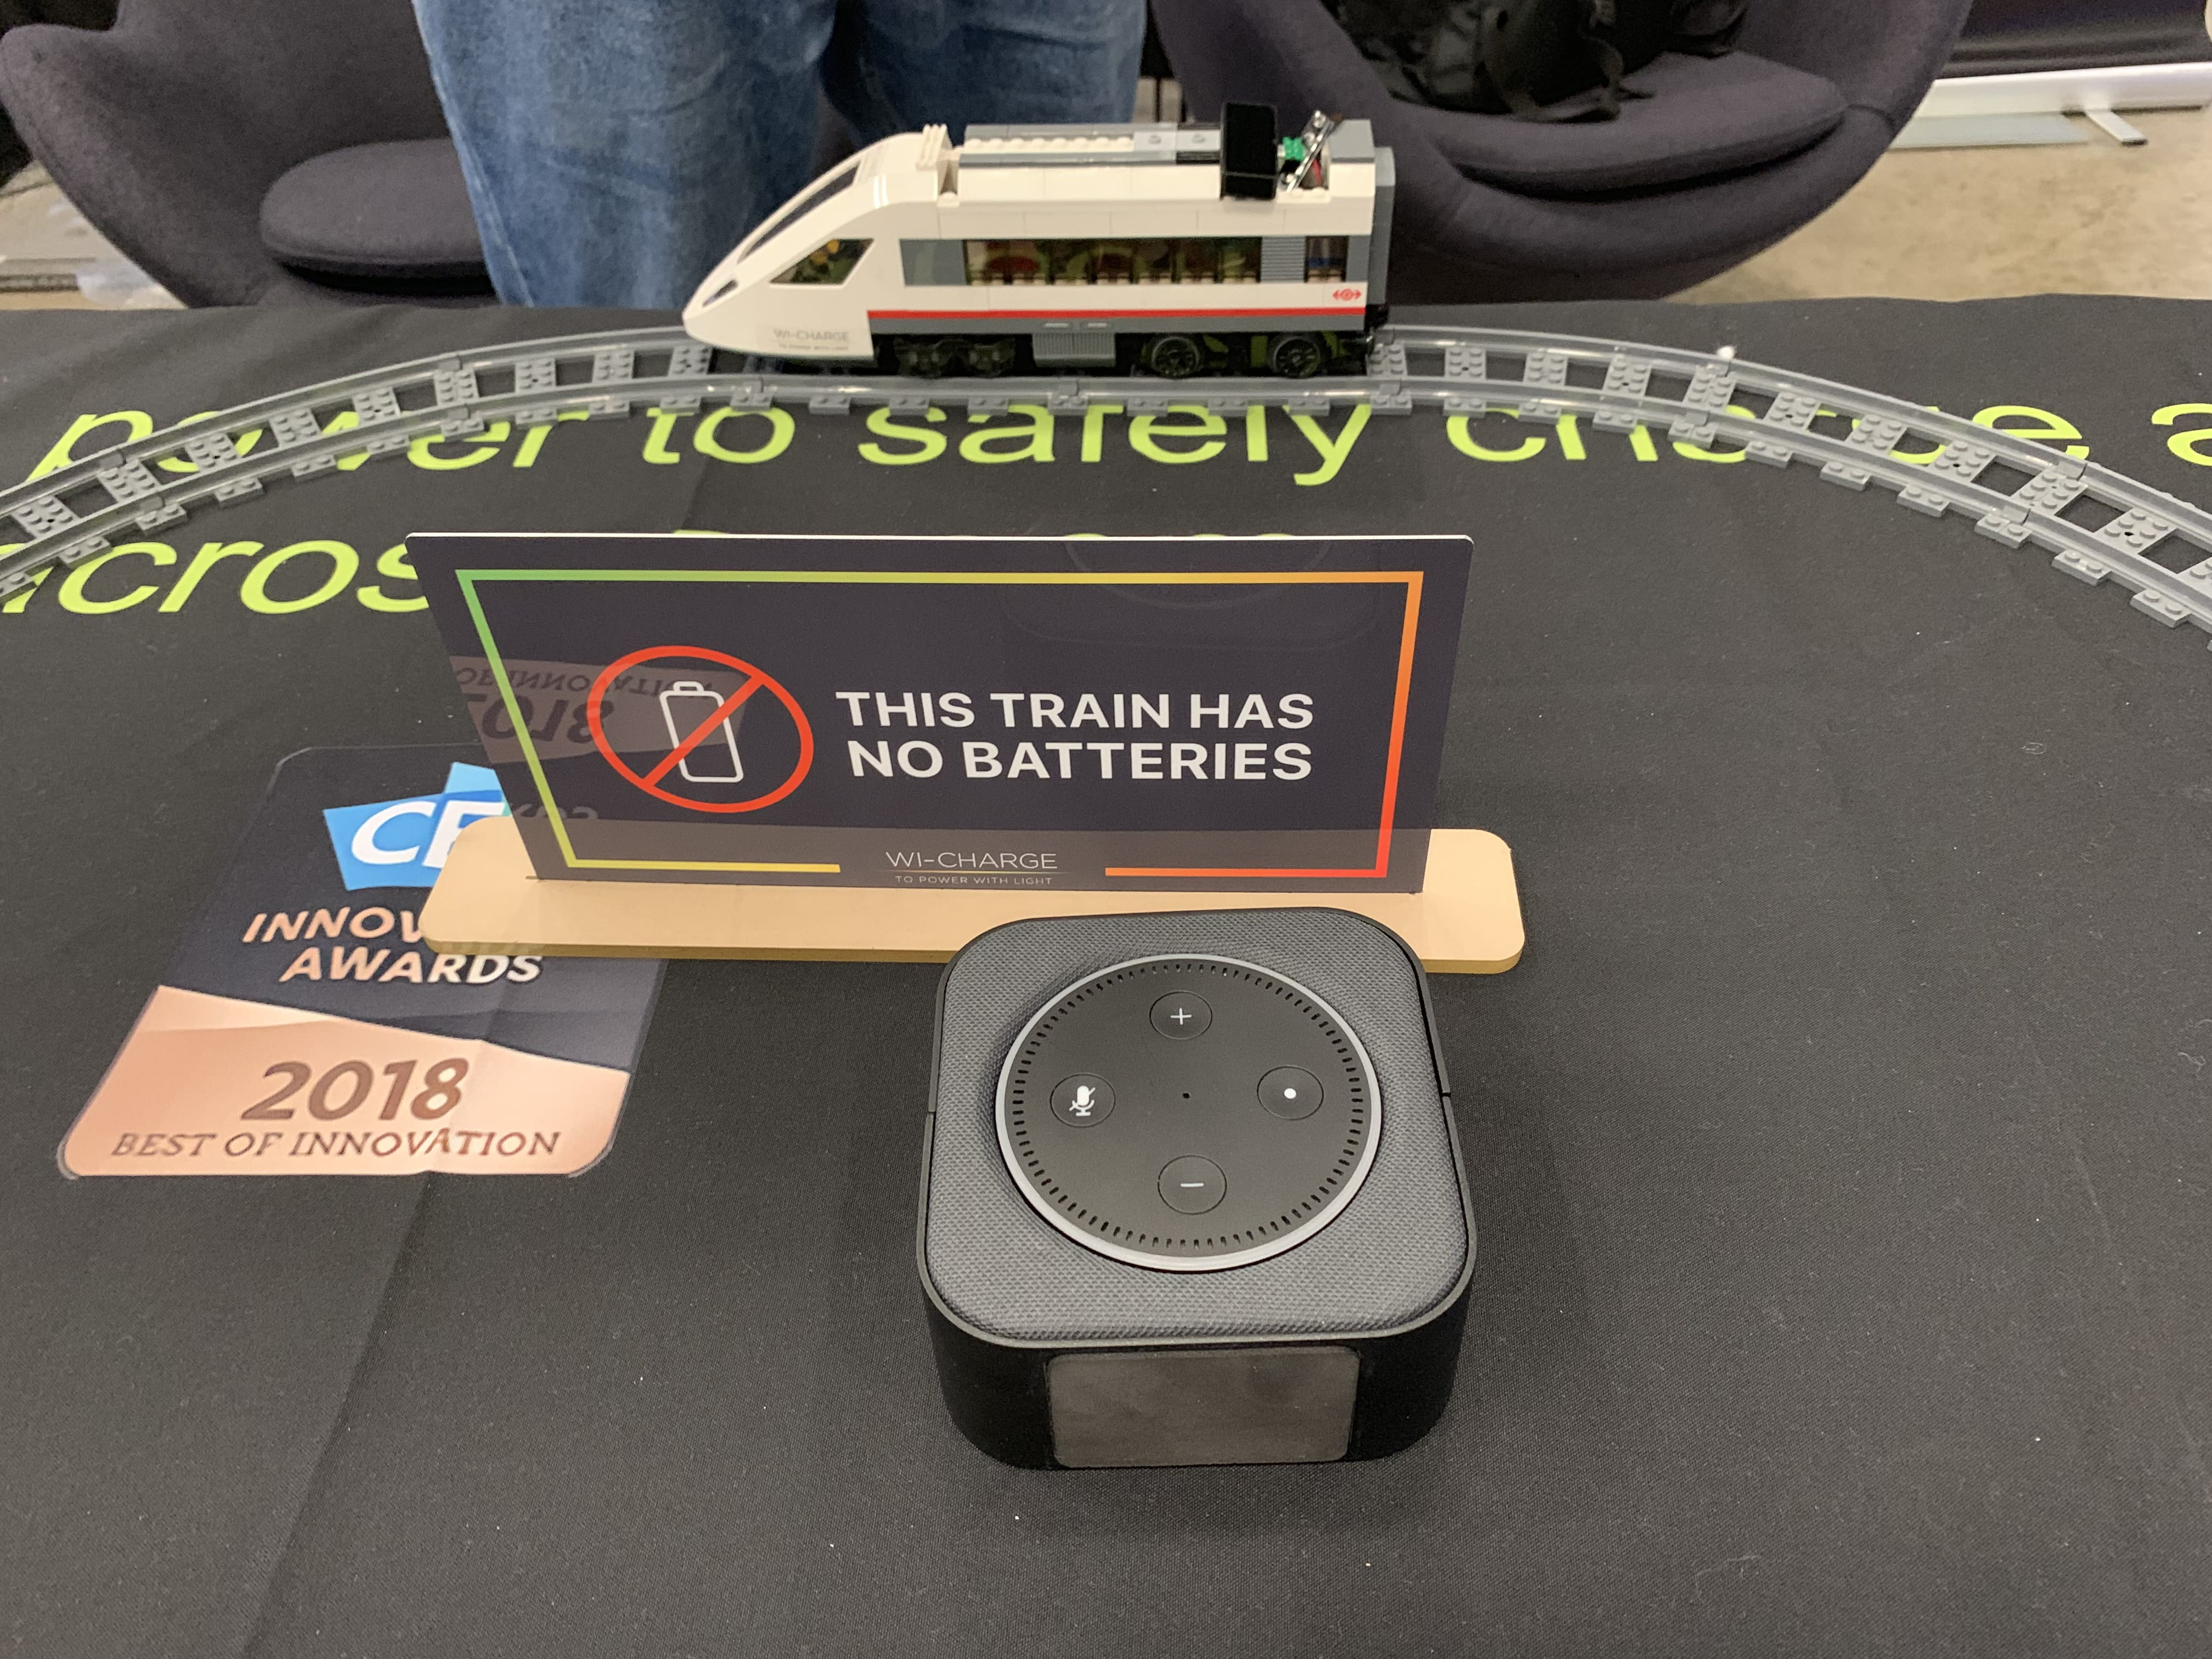 SXSW: Wi-Charge Uses Infrared to Wirelessly Charge Your Devices